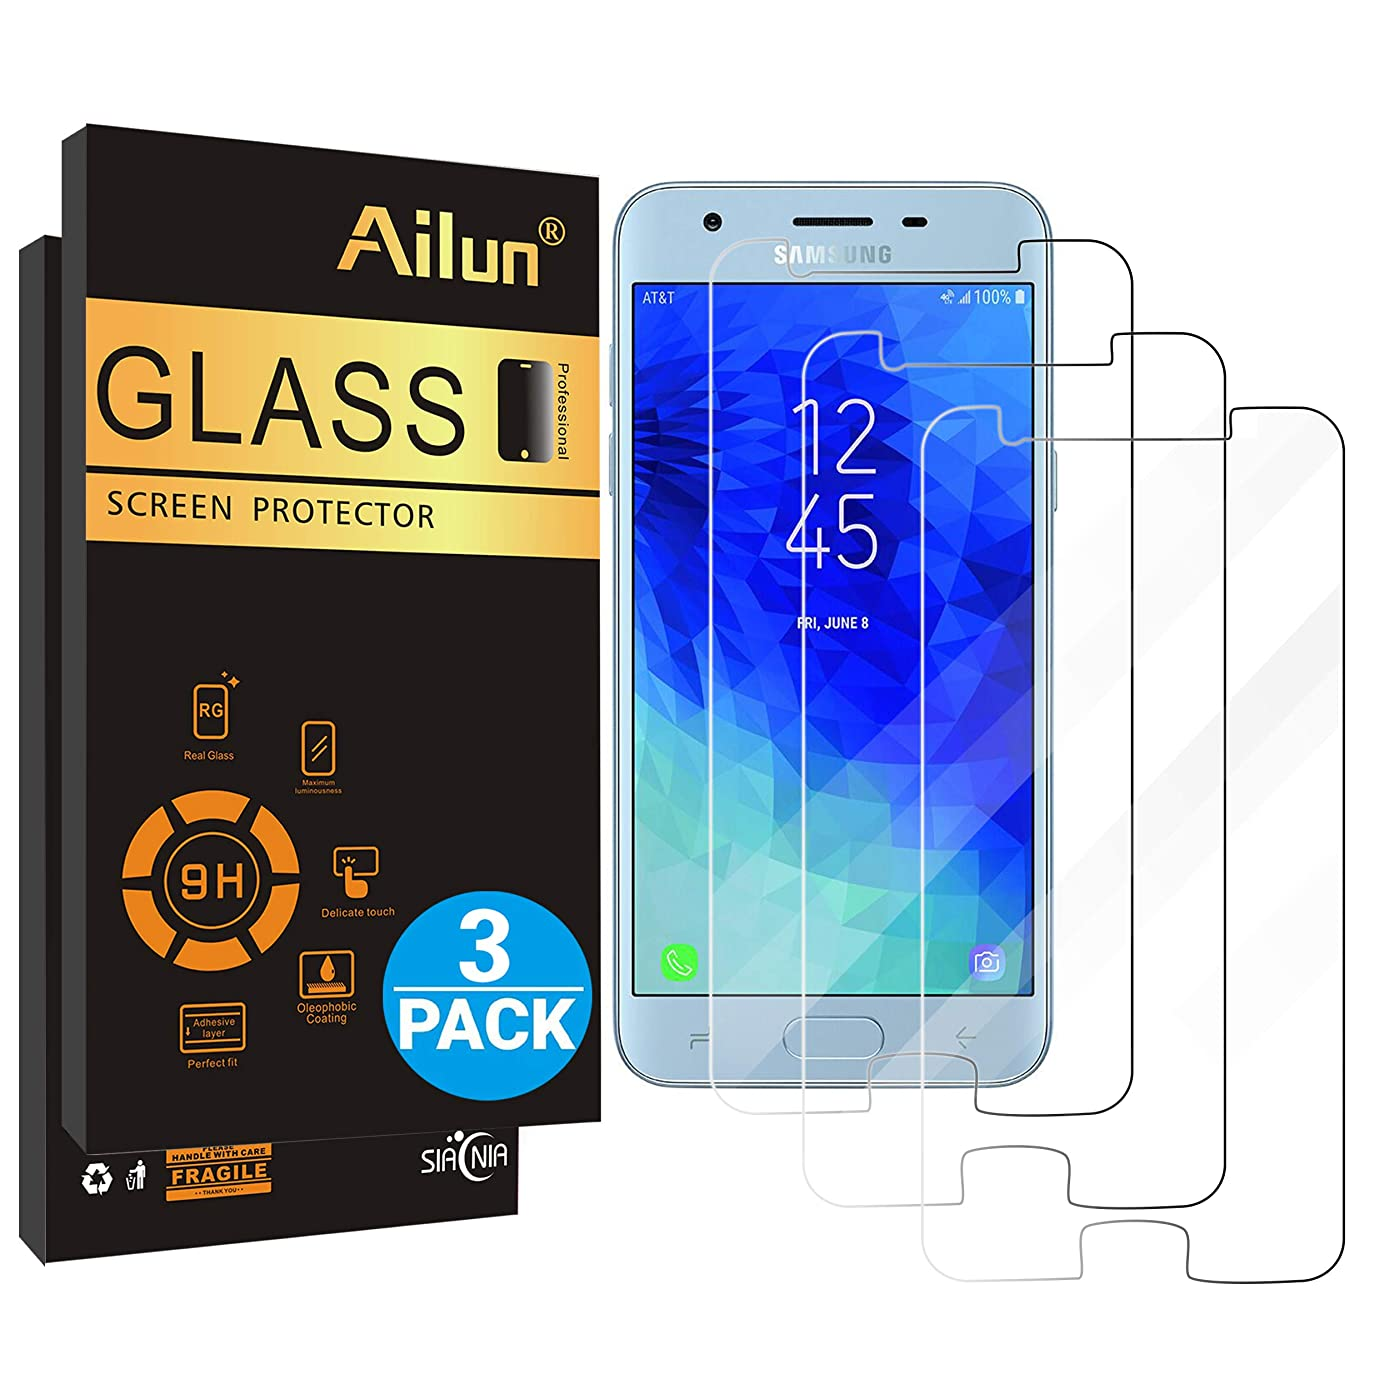 Ailun Screen Protector for Galaxy J3(2018)[3Pack] Tempered Glass for Samsung Galaxy J3 Star 2018 SM-J337,Amp Prime 3 2018,Galaxy J3 V 2018,Galaxy J3 Aura 2018,Galaxy Sol 3 2018,Case Friendly